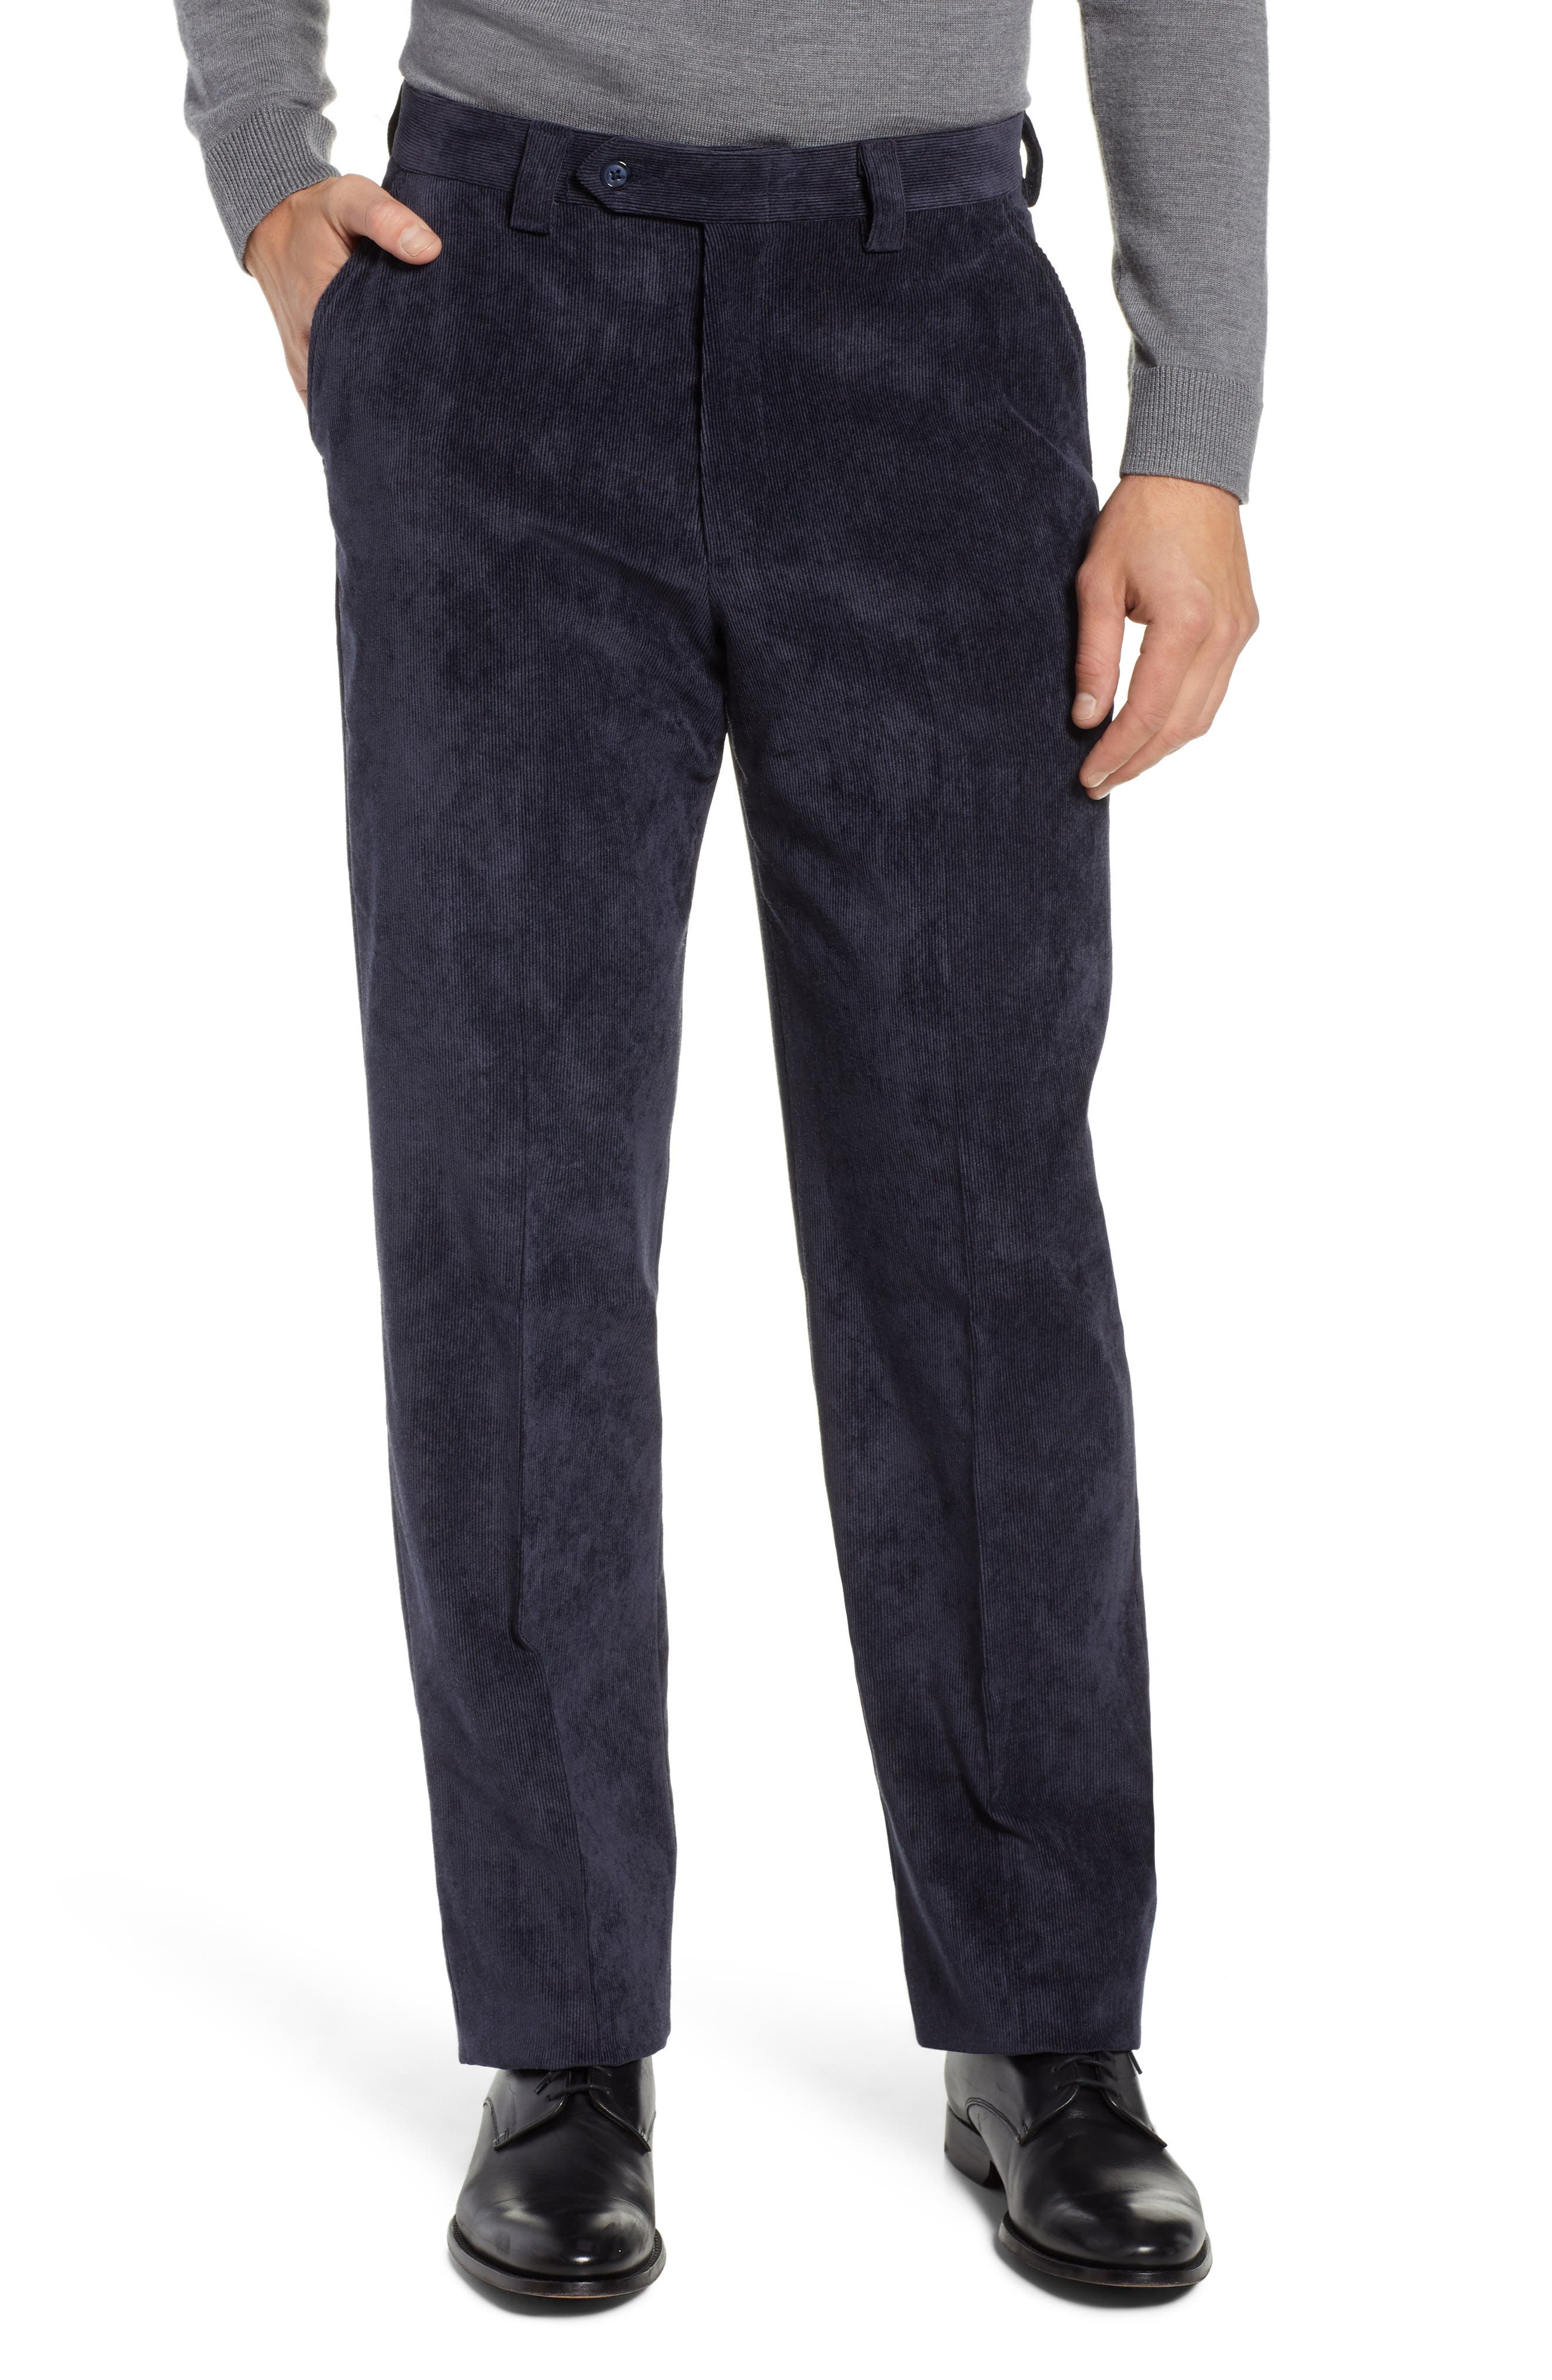 BERLE Classic Fit Flat Front Corduroy Trousers, Main, color, 410